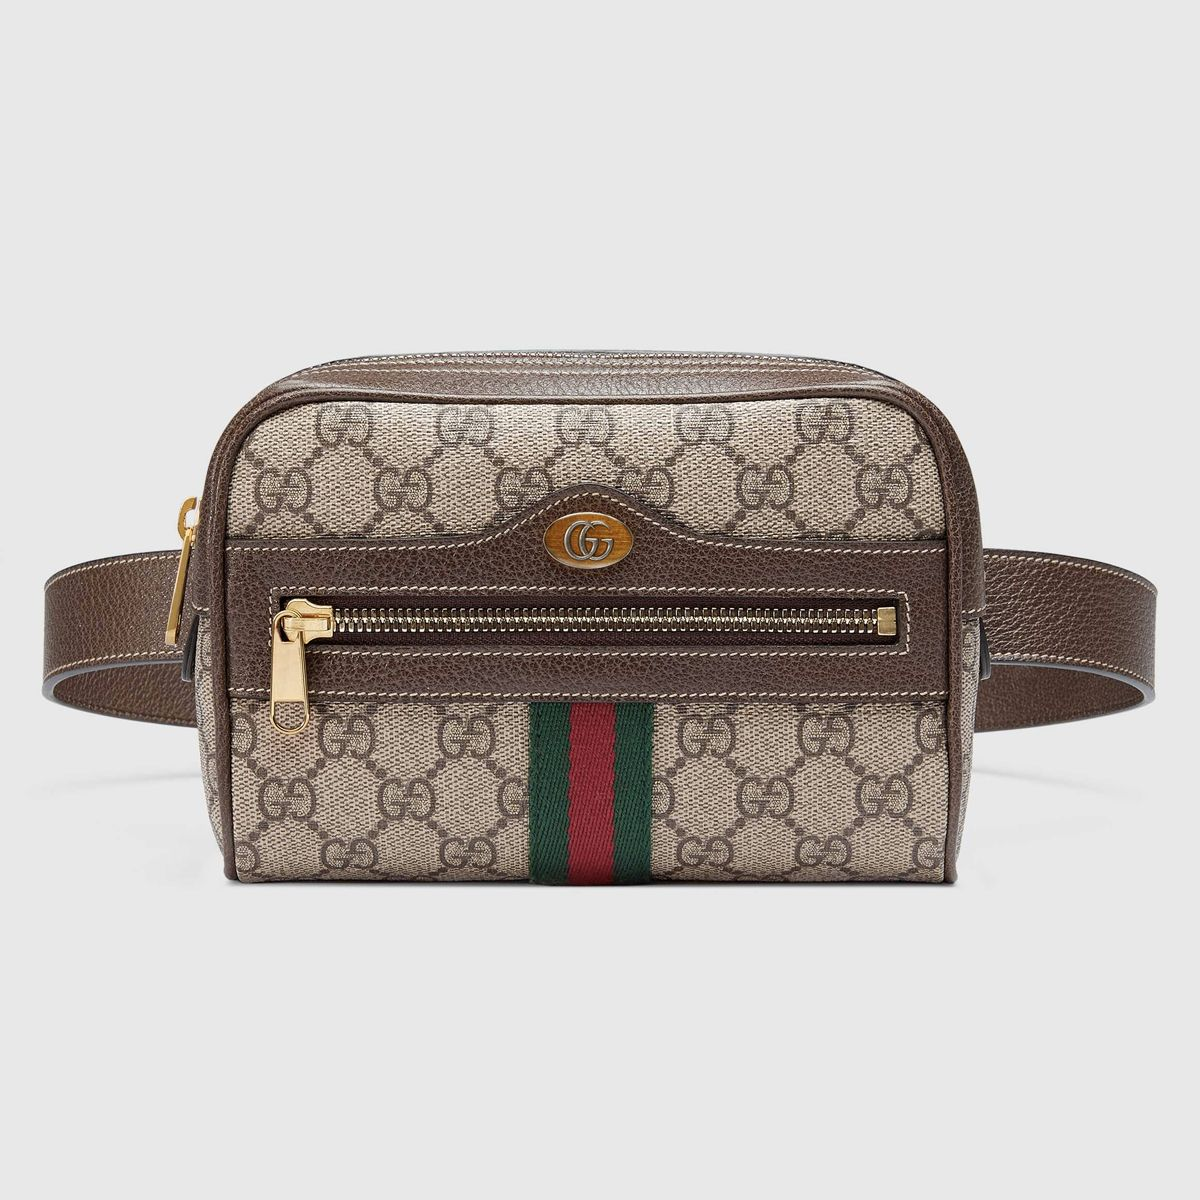 undefined 265463 1534424625512 product.1200x1200uc - 10 Extra Inexpensive Methods to Add Gucci Into Your Wardrobe